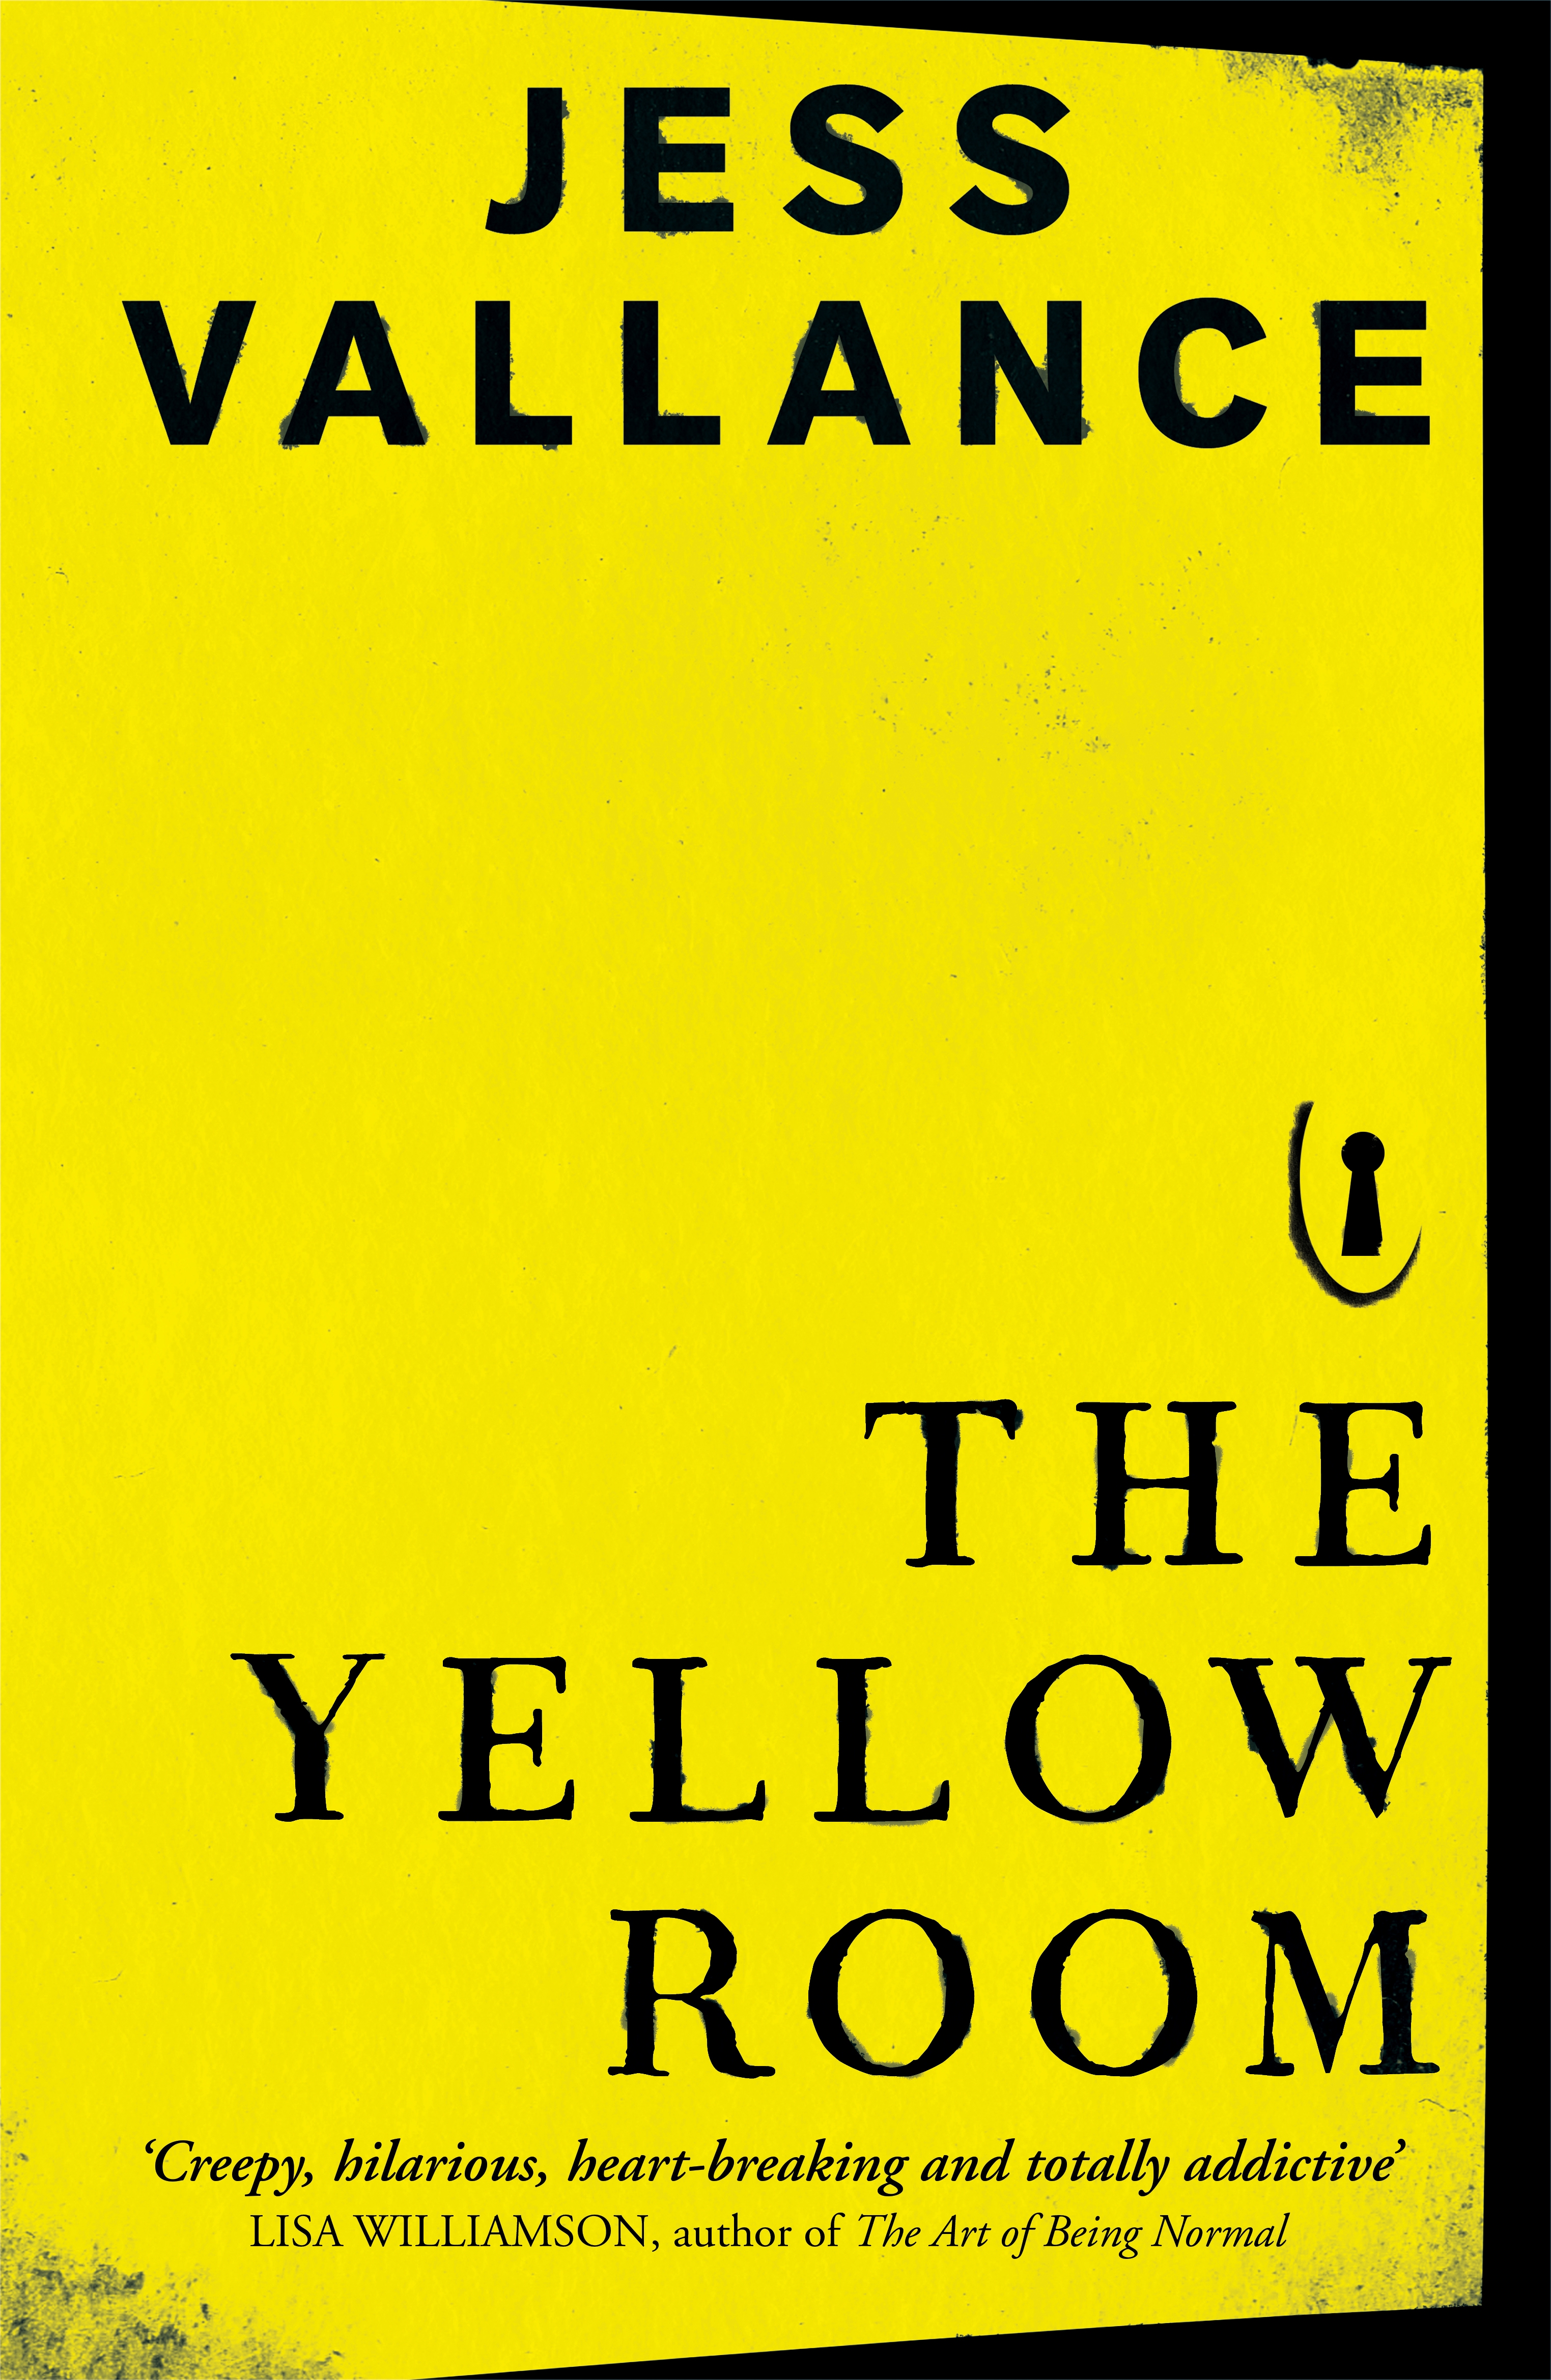 The Yellow Room by Jess Vallance